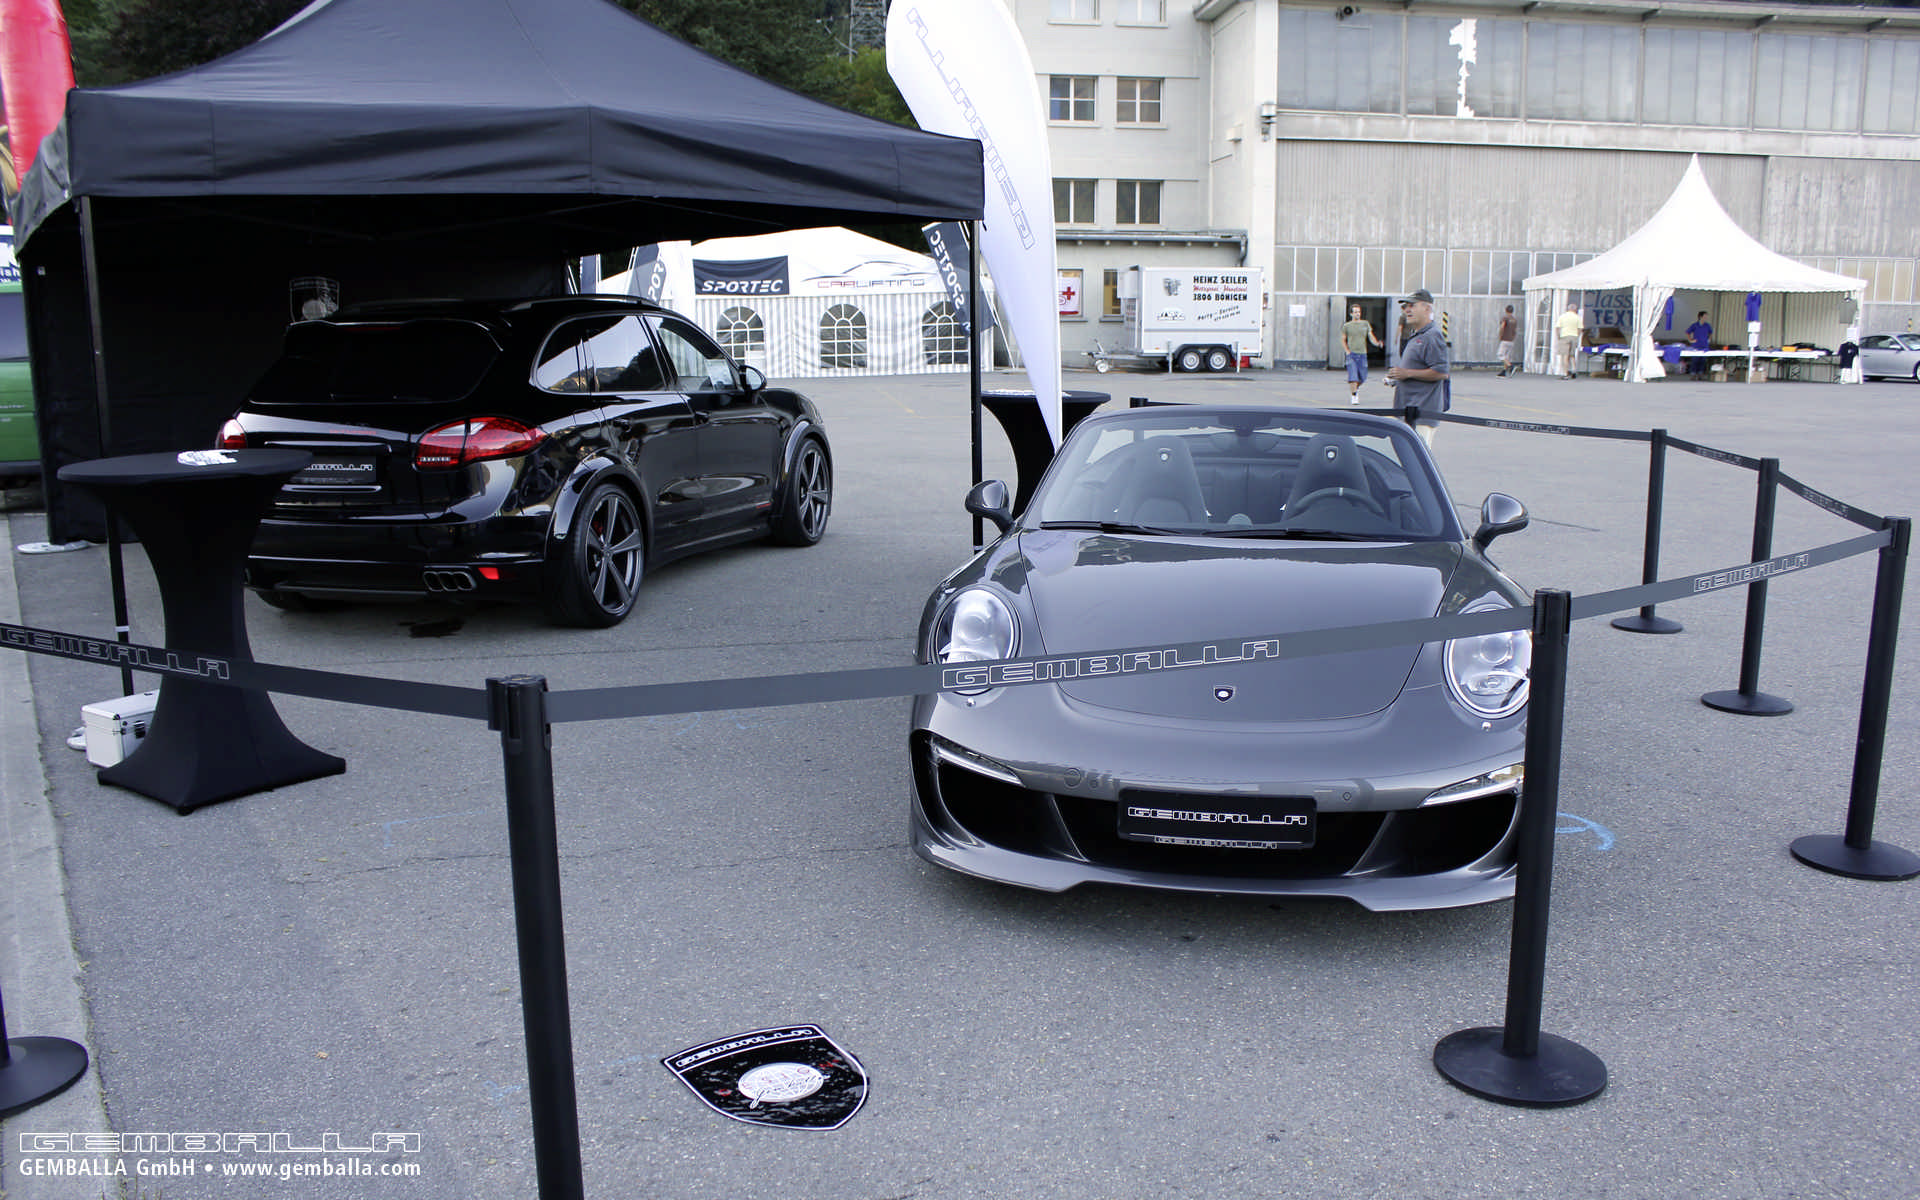 gemballa_gmbh_event_pt_interlaken_2012_004